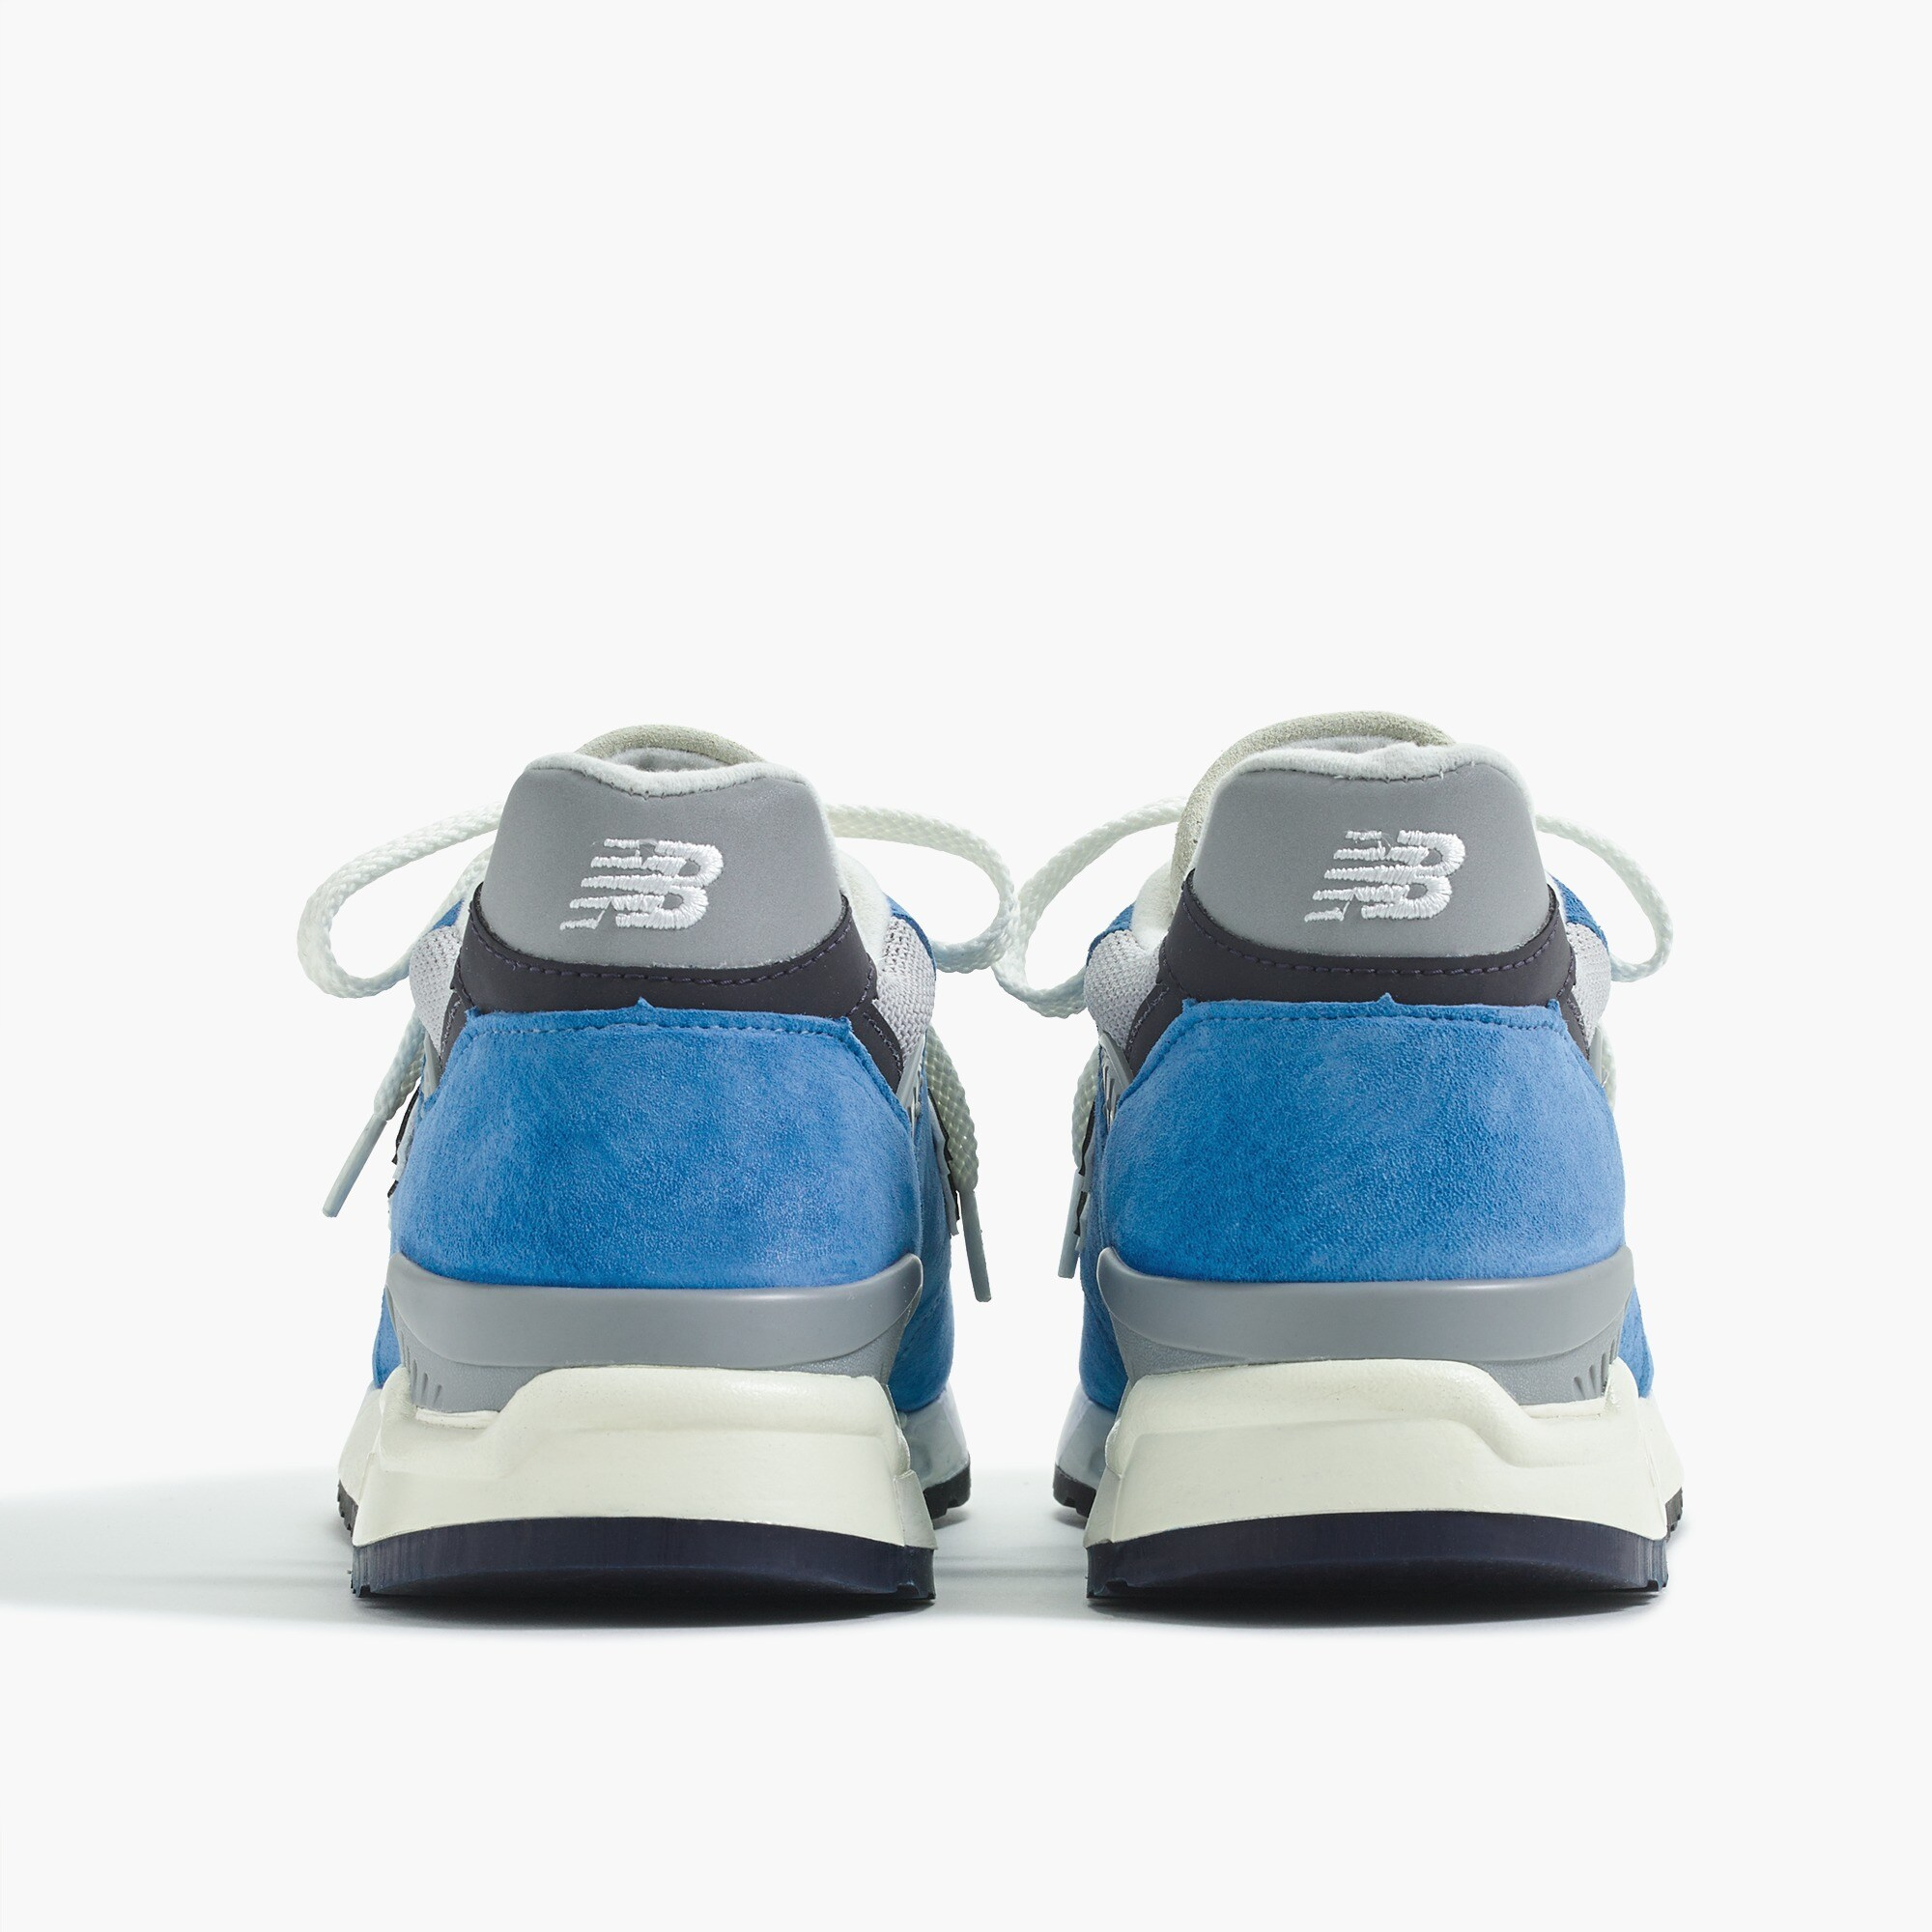 New Balance® for J.Crew 998 sneakers in bright blue